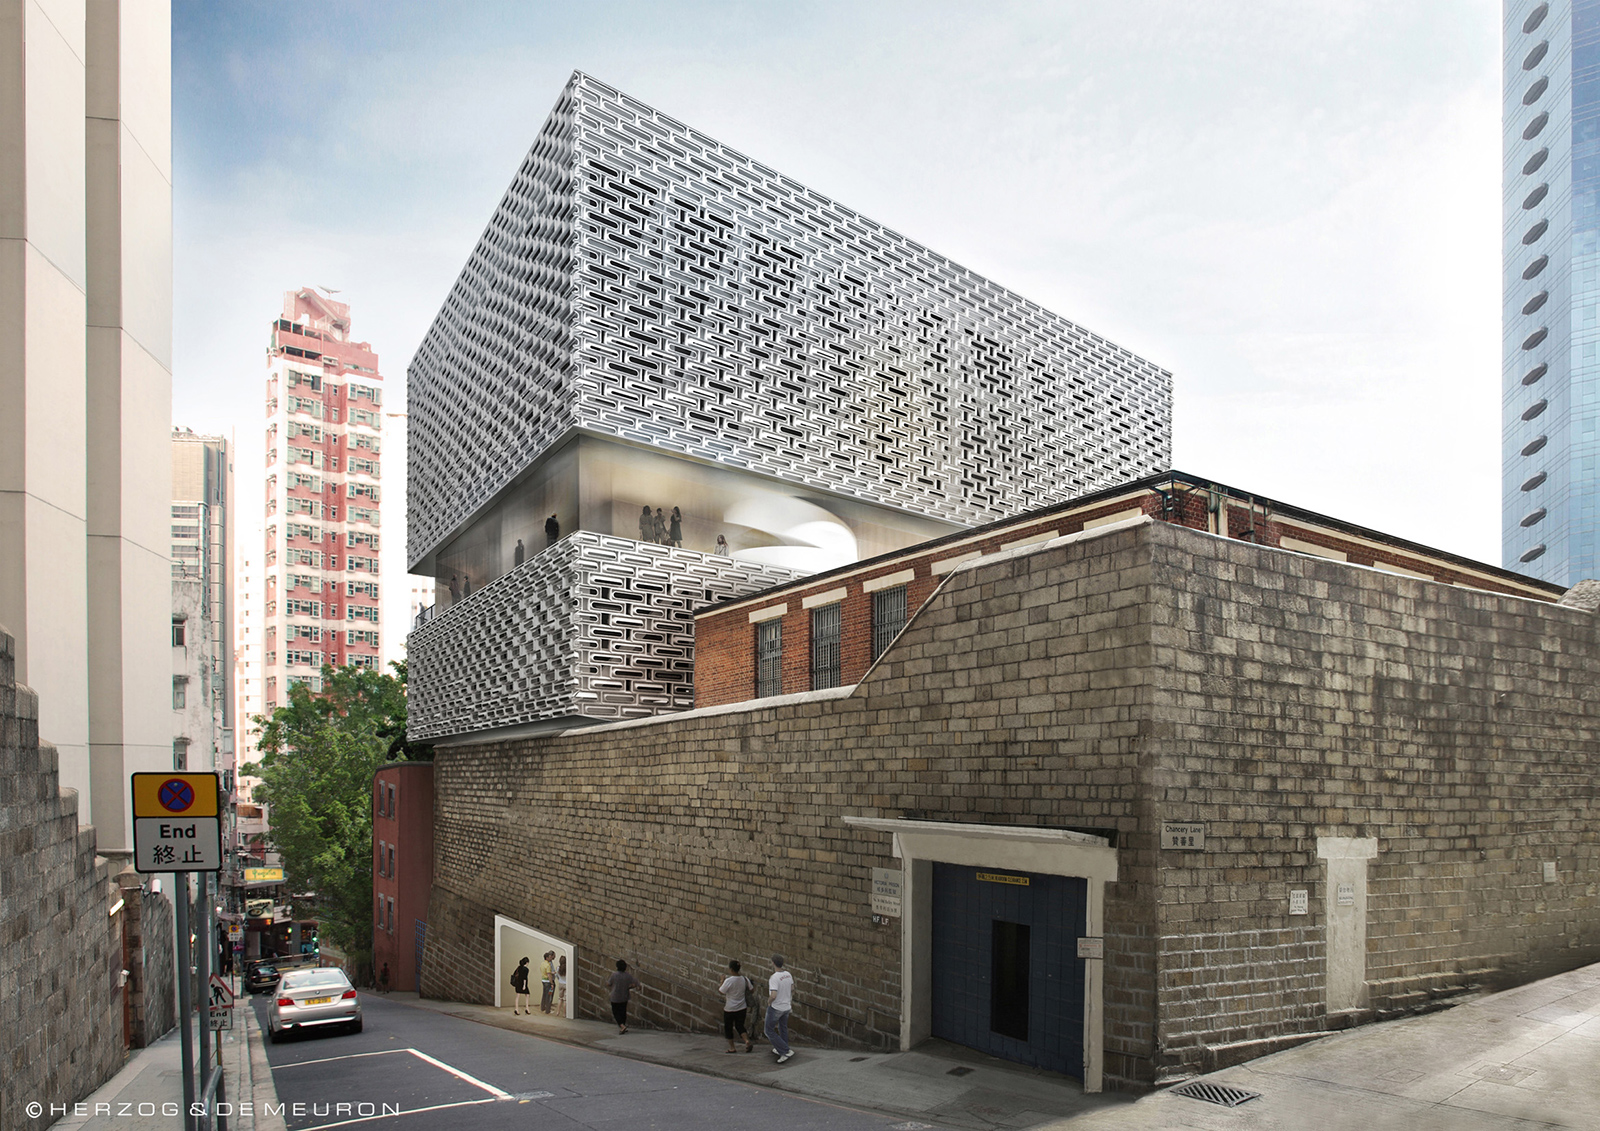 10 new museums opening in 2018: Tai Kwun Center